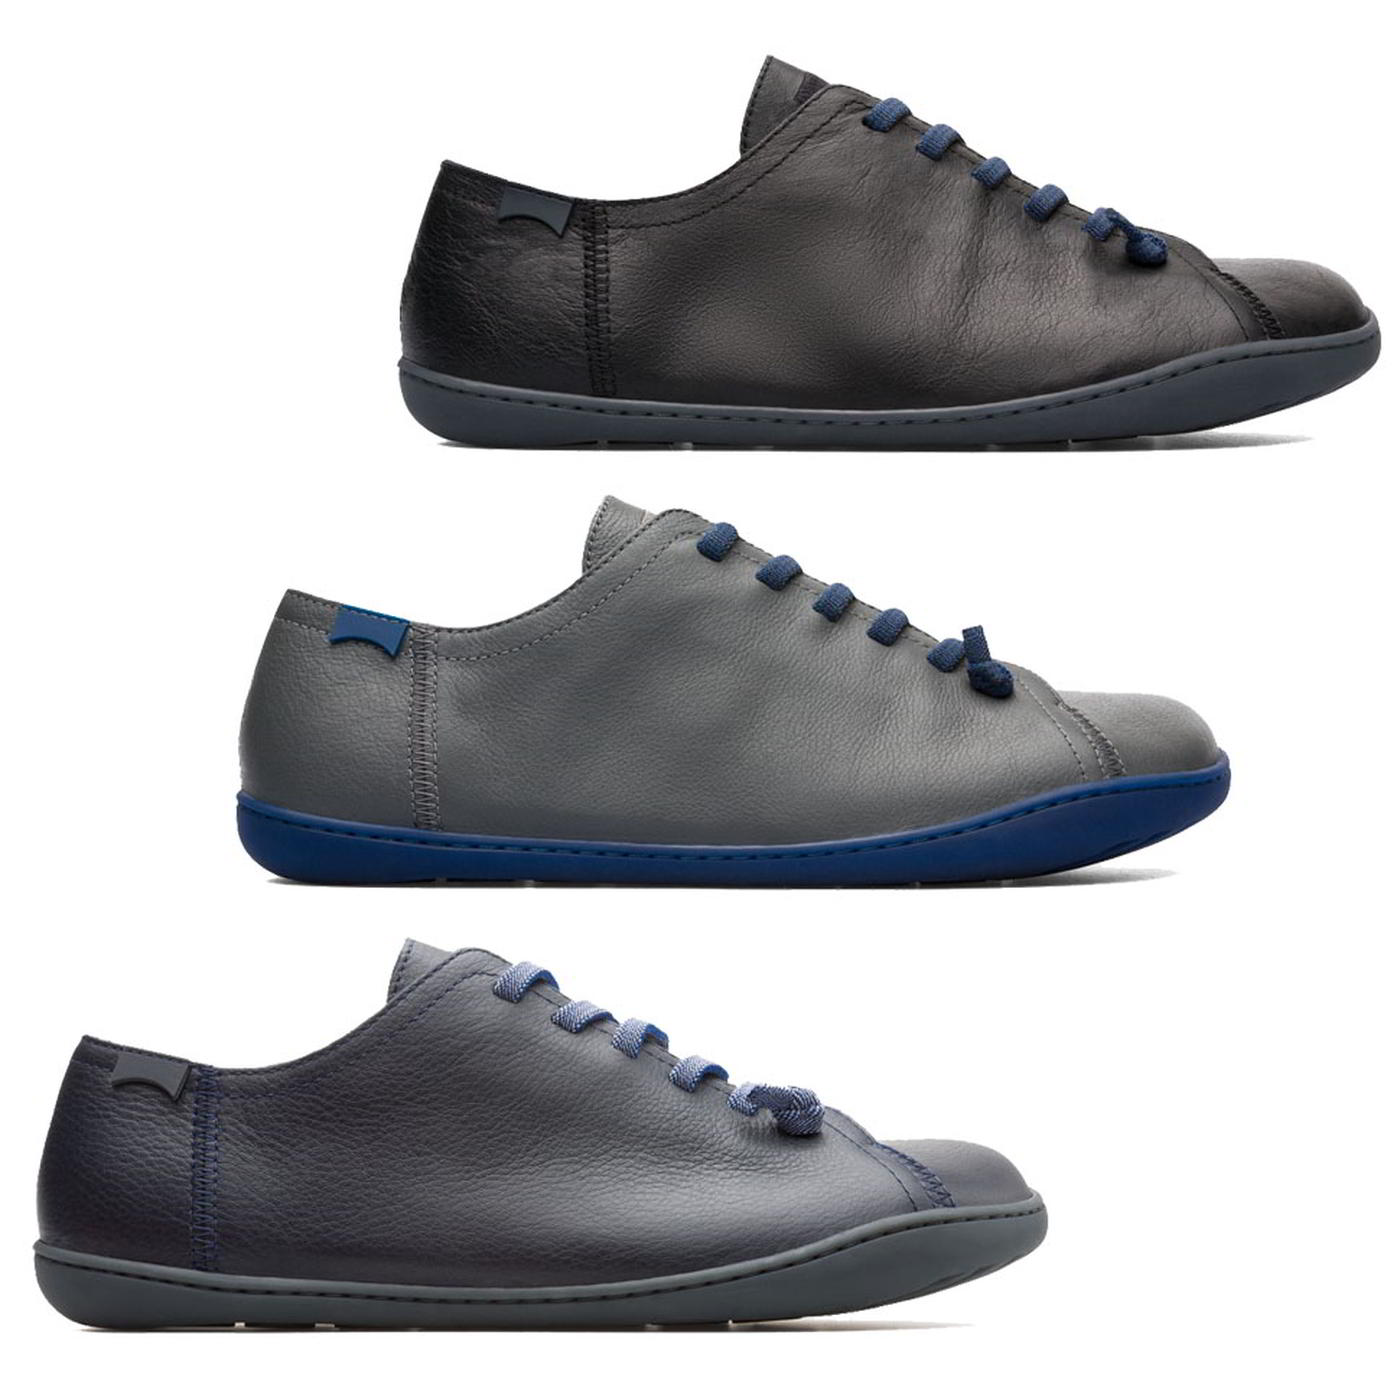 Details about Camper Peu Cami Mens Blue Black Grey Lace Up Leather Shoes Trainers Size UK 7 12